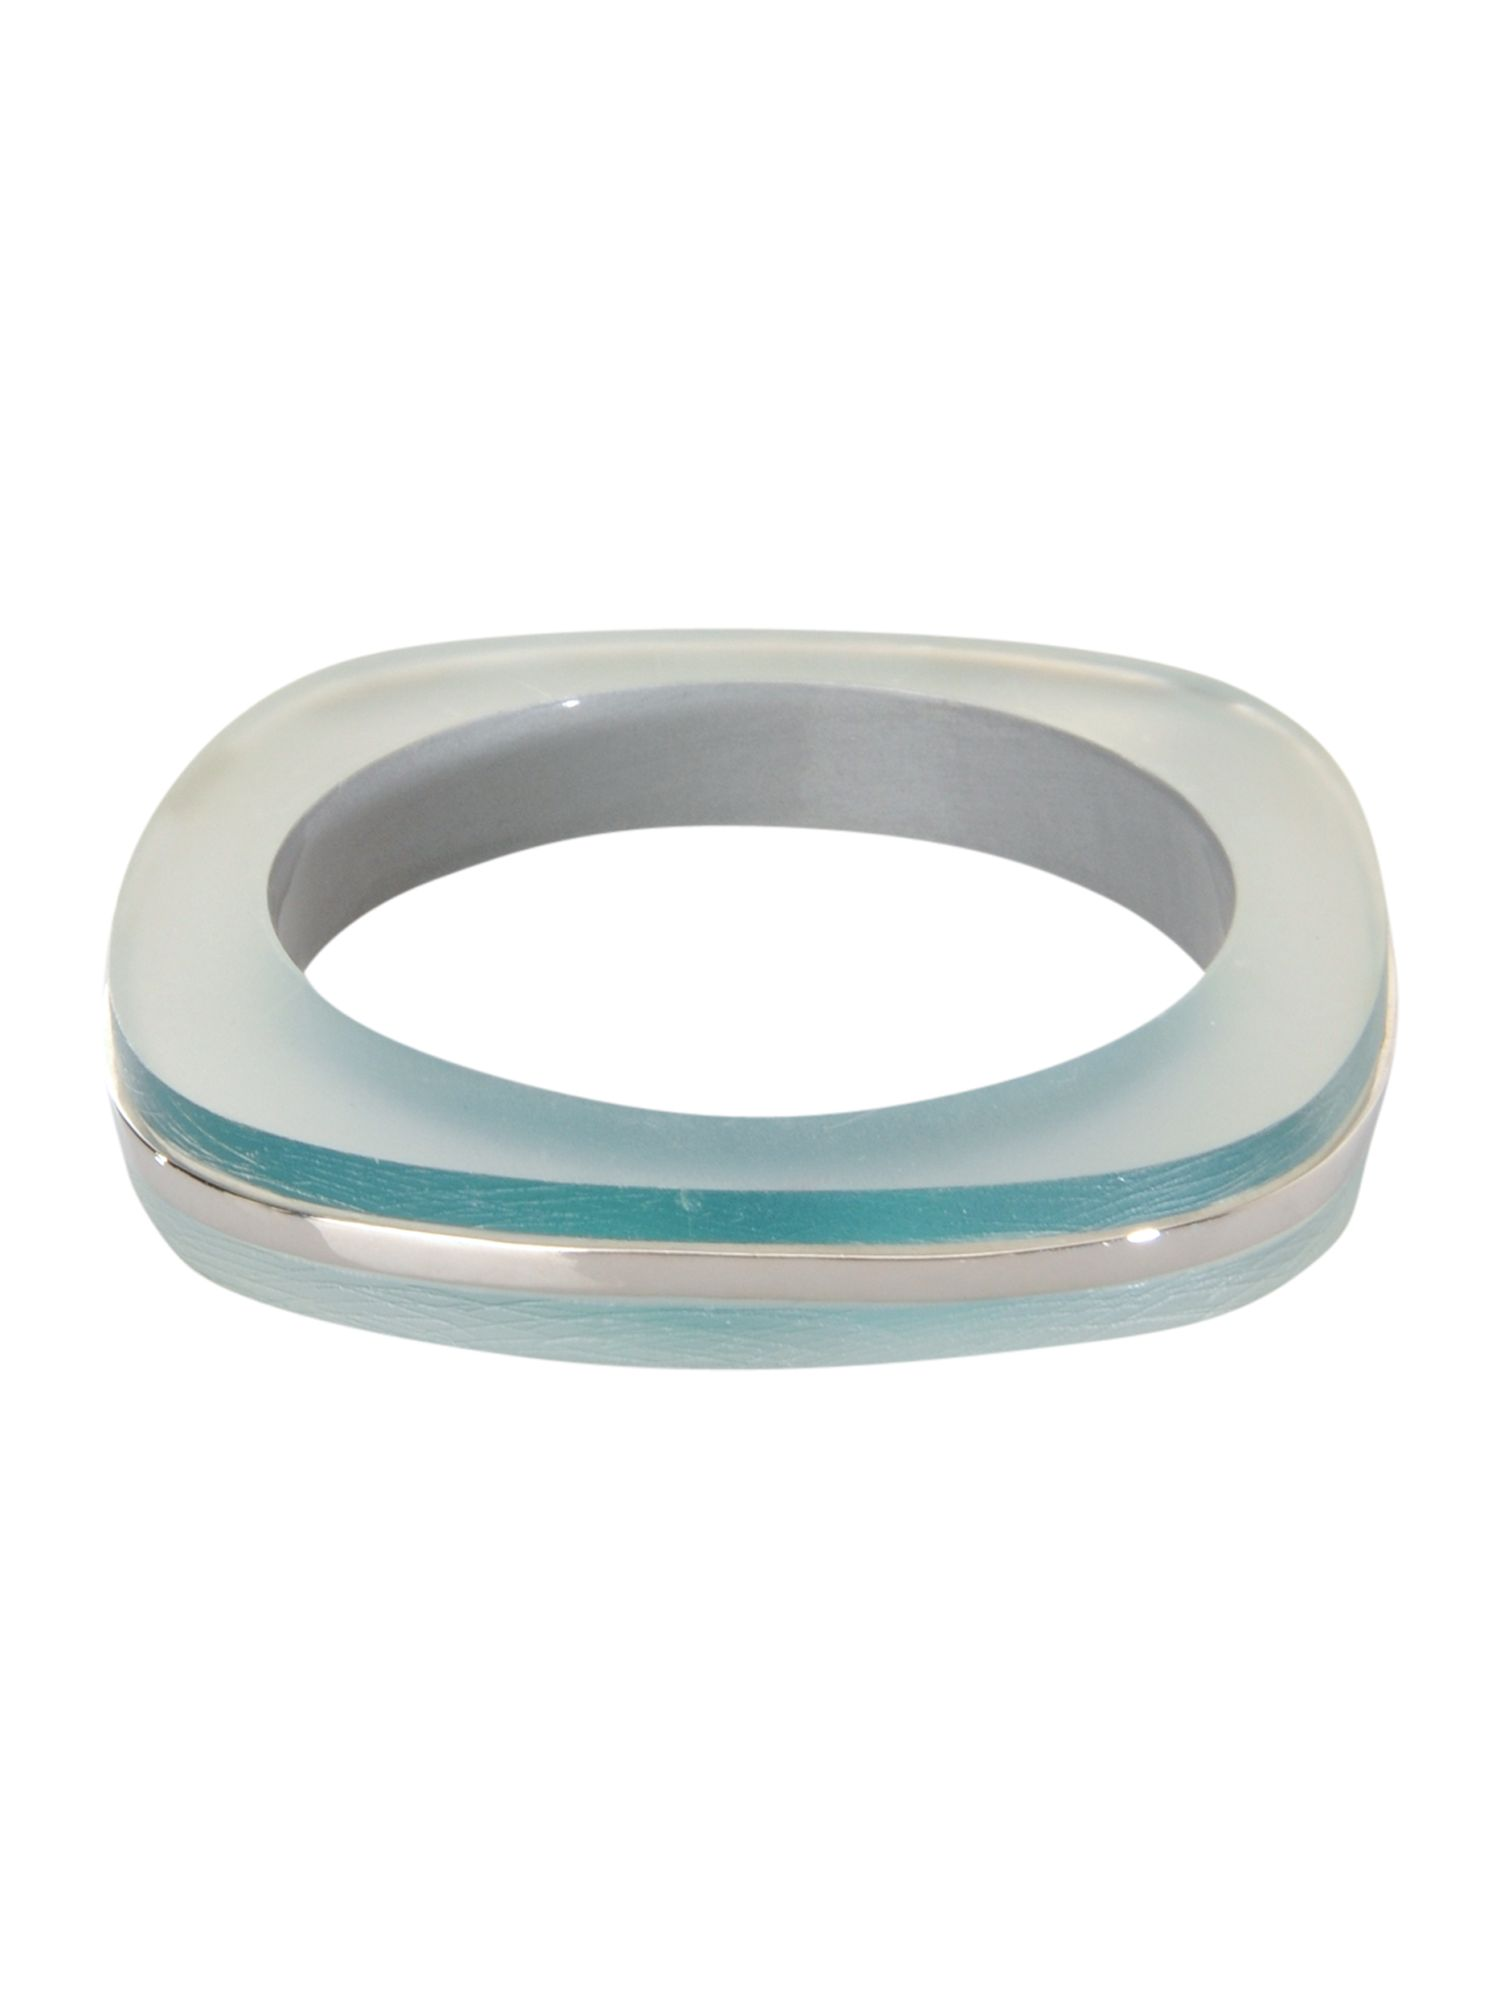 Teal square bangle